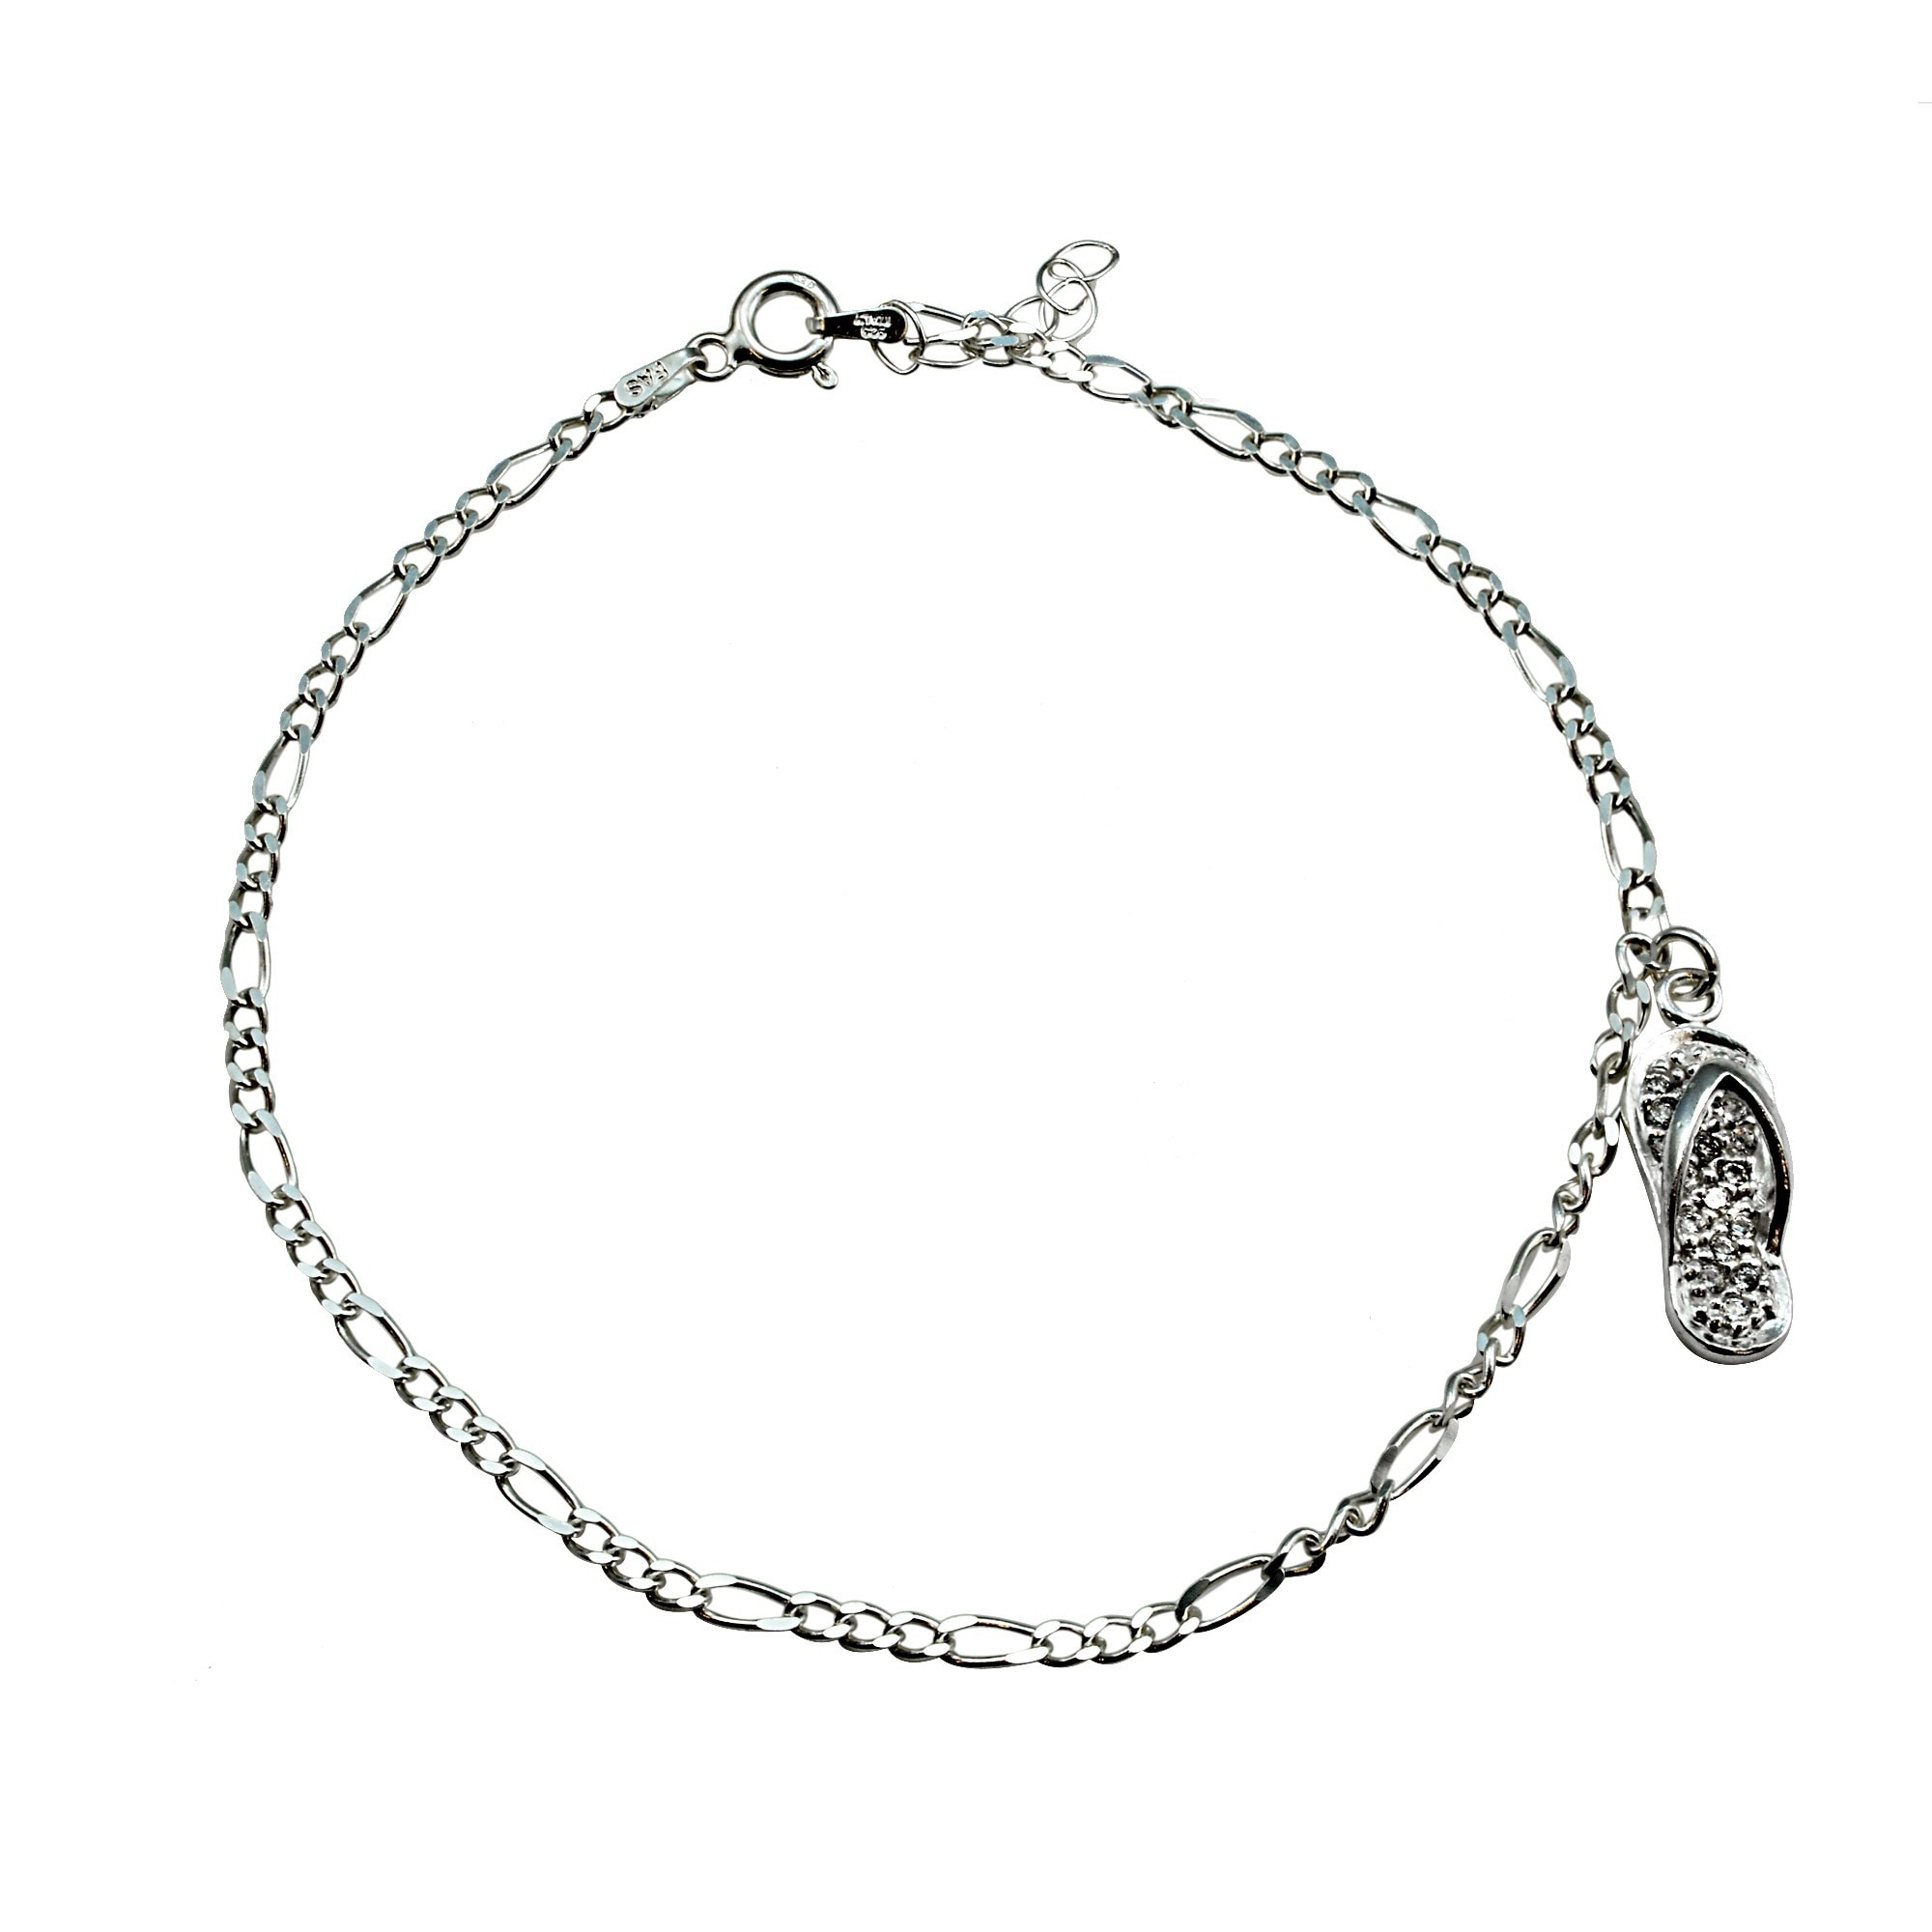 cable adorable blk products chain silver anklet to hang with bracelet rnd zirconia dangle ca sterling your mini aeravida details link perfect cubic cz the black finish that outfit crafted cute is accents on anklets this